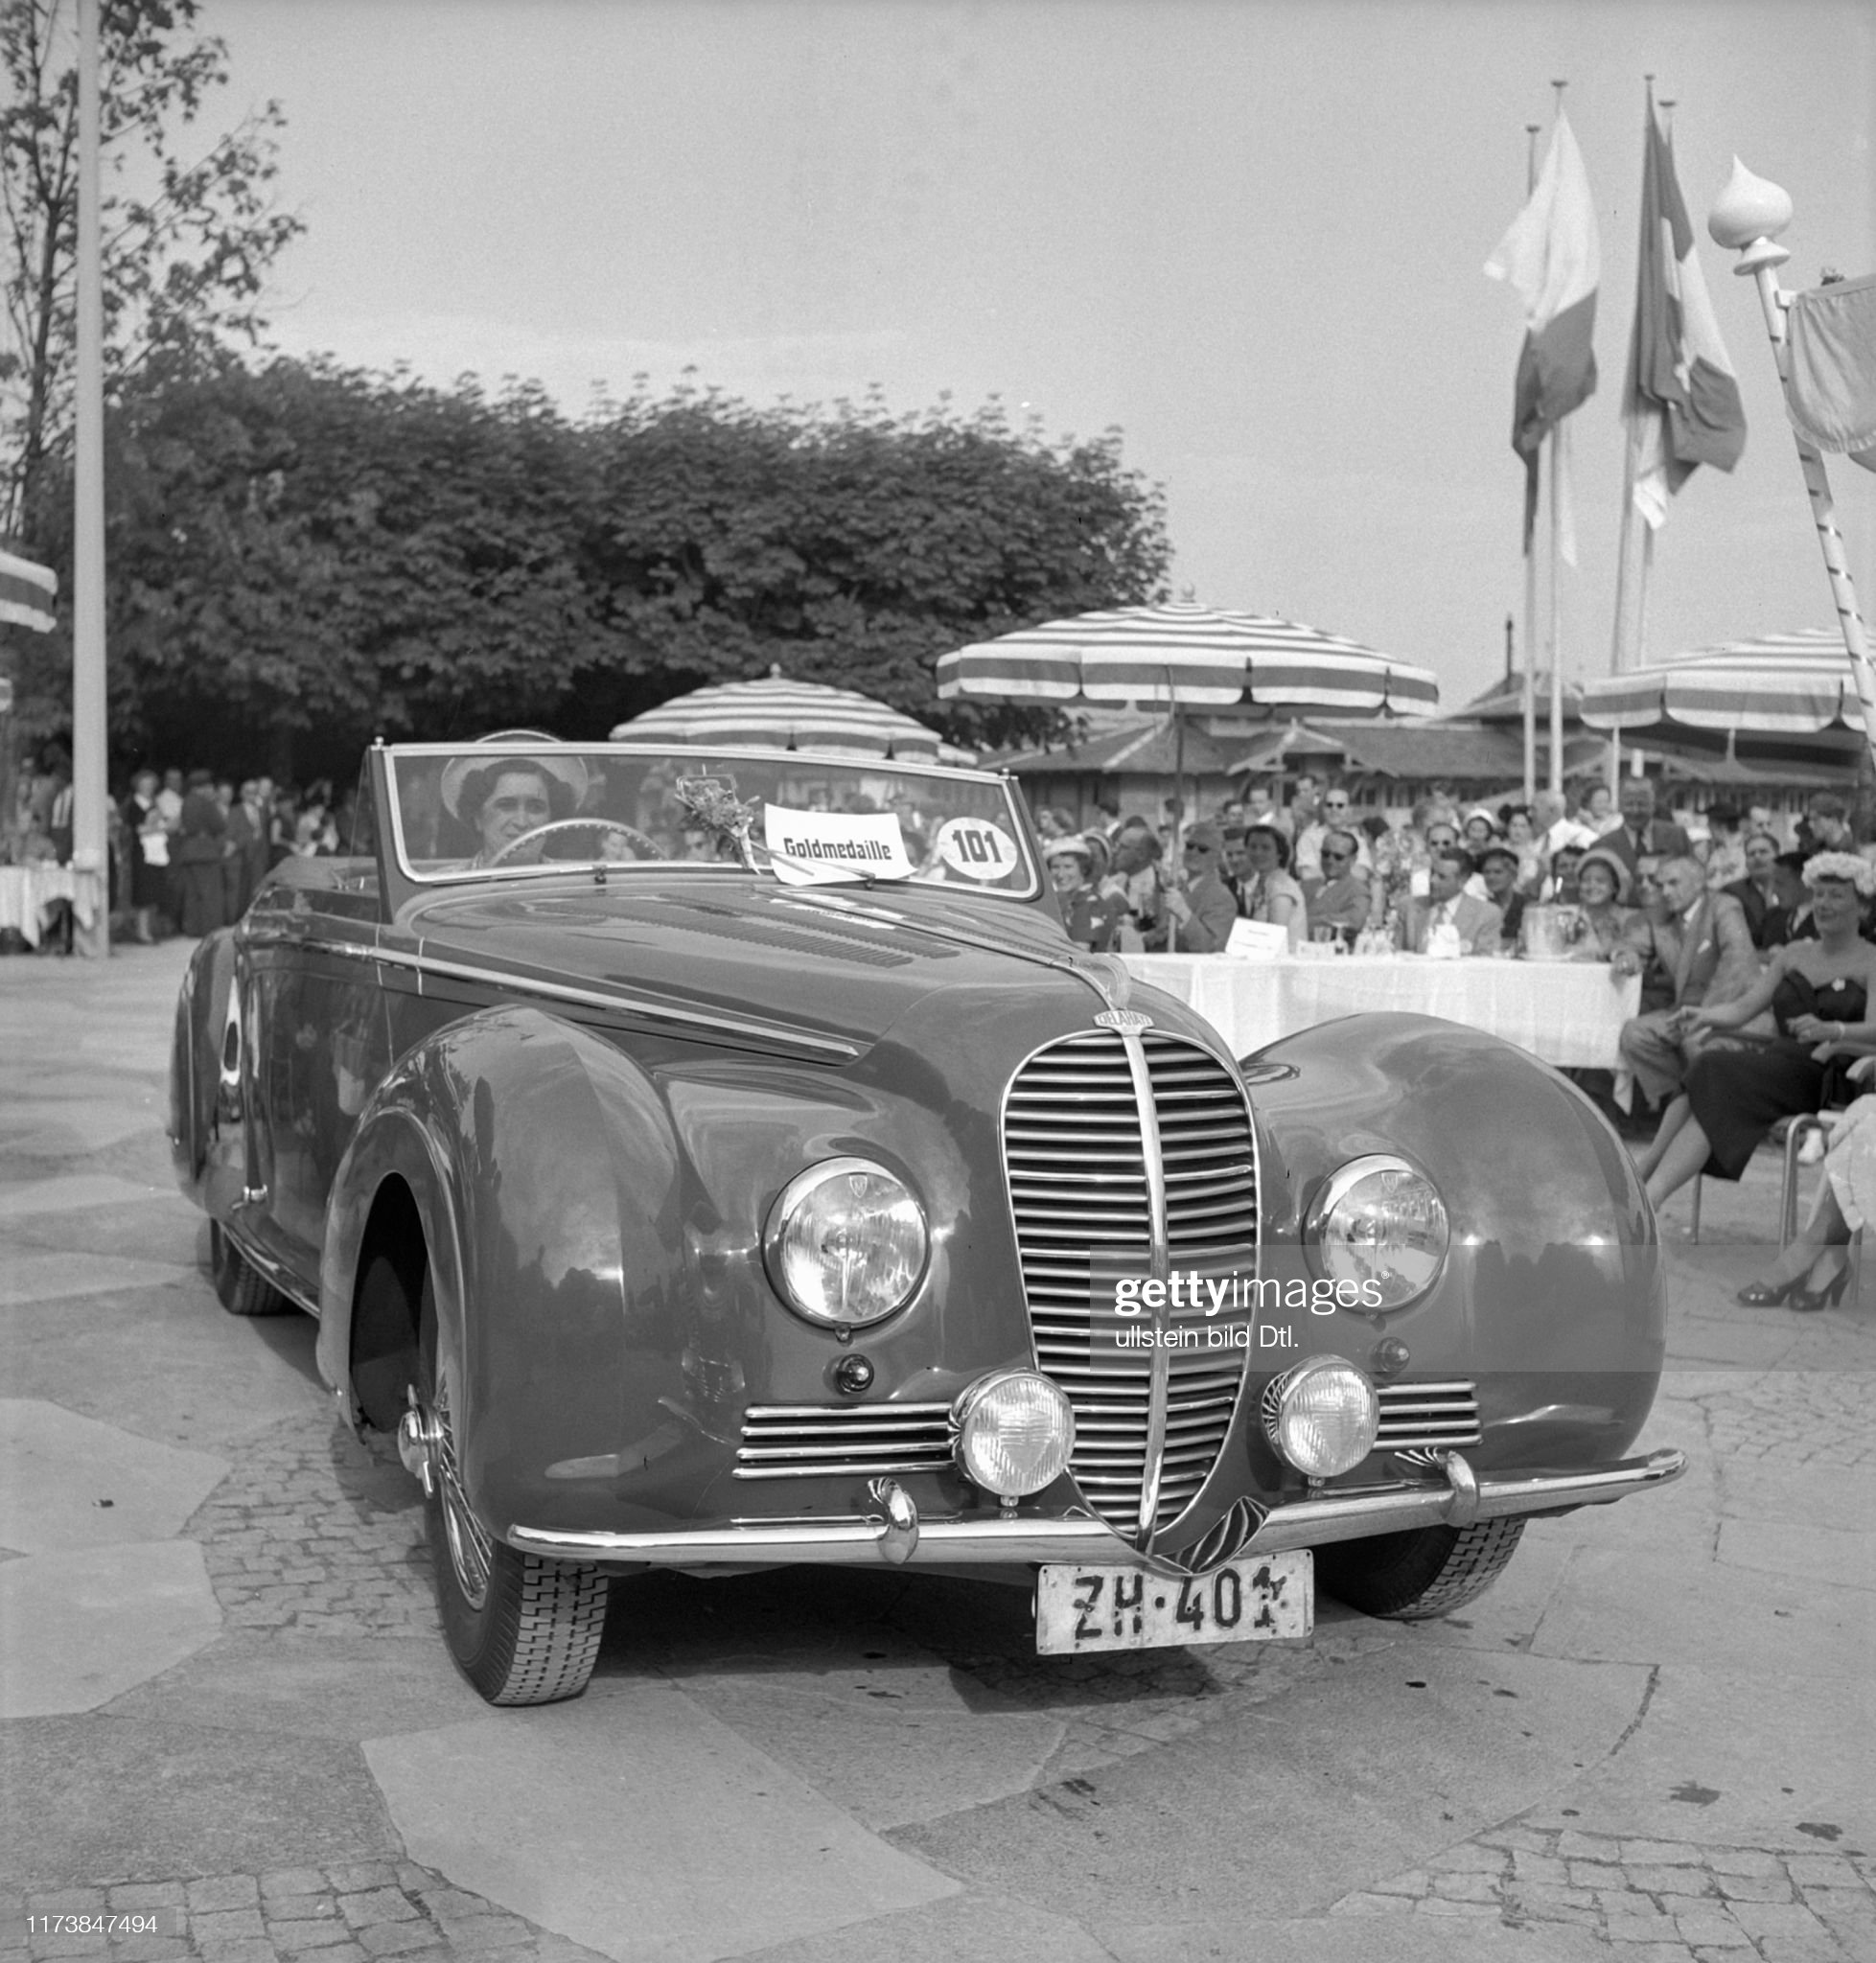 6th International car model beauty contest, Lucerne 1951: Delahaye 1950/51 : News Photo